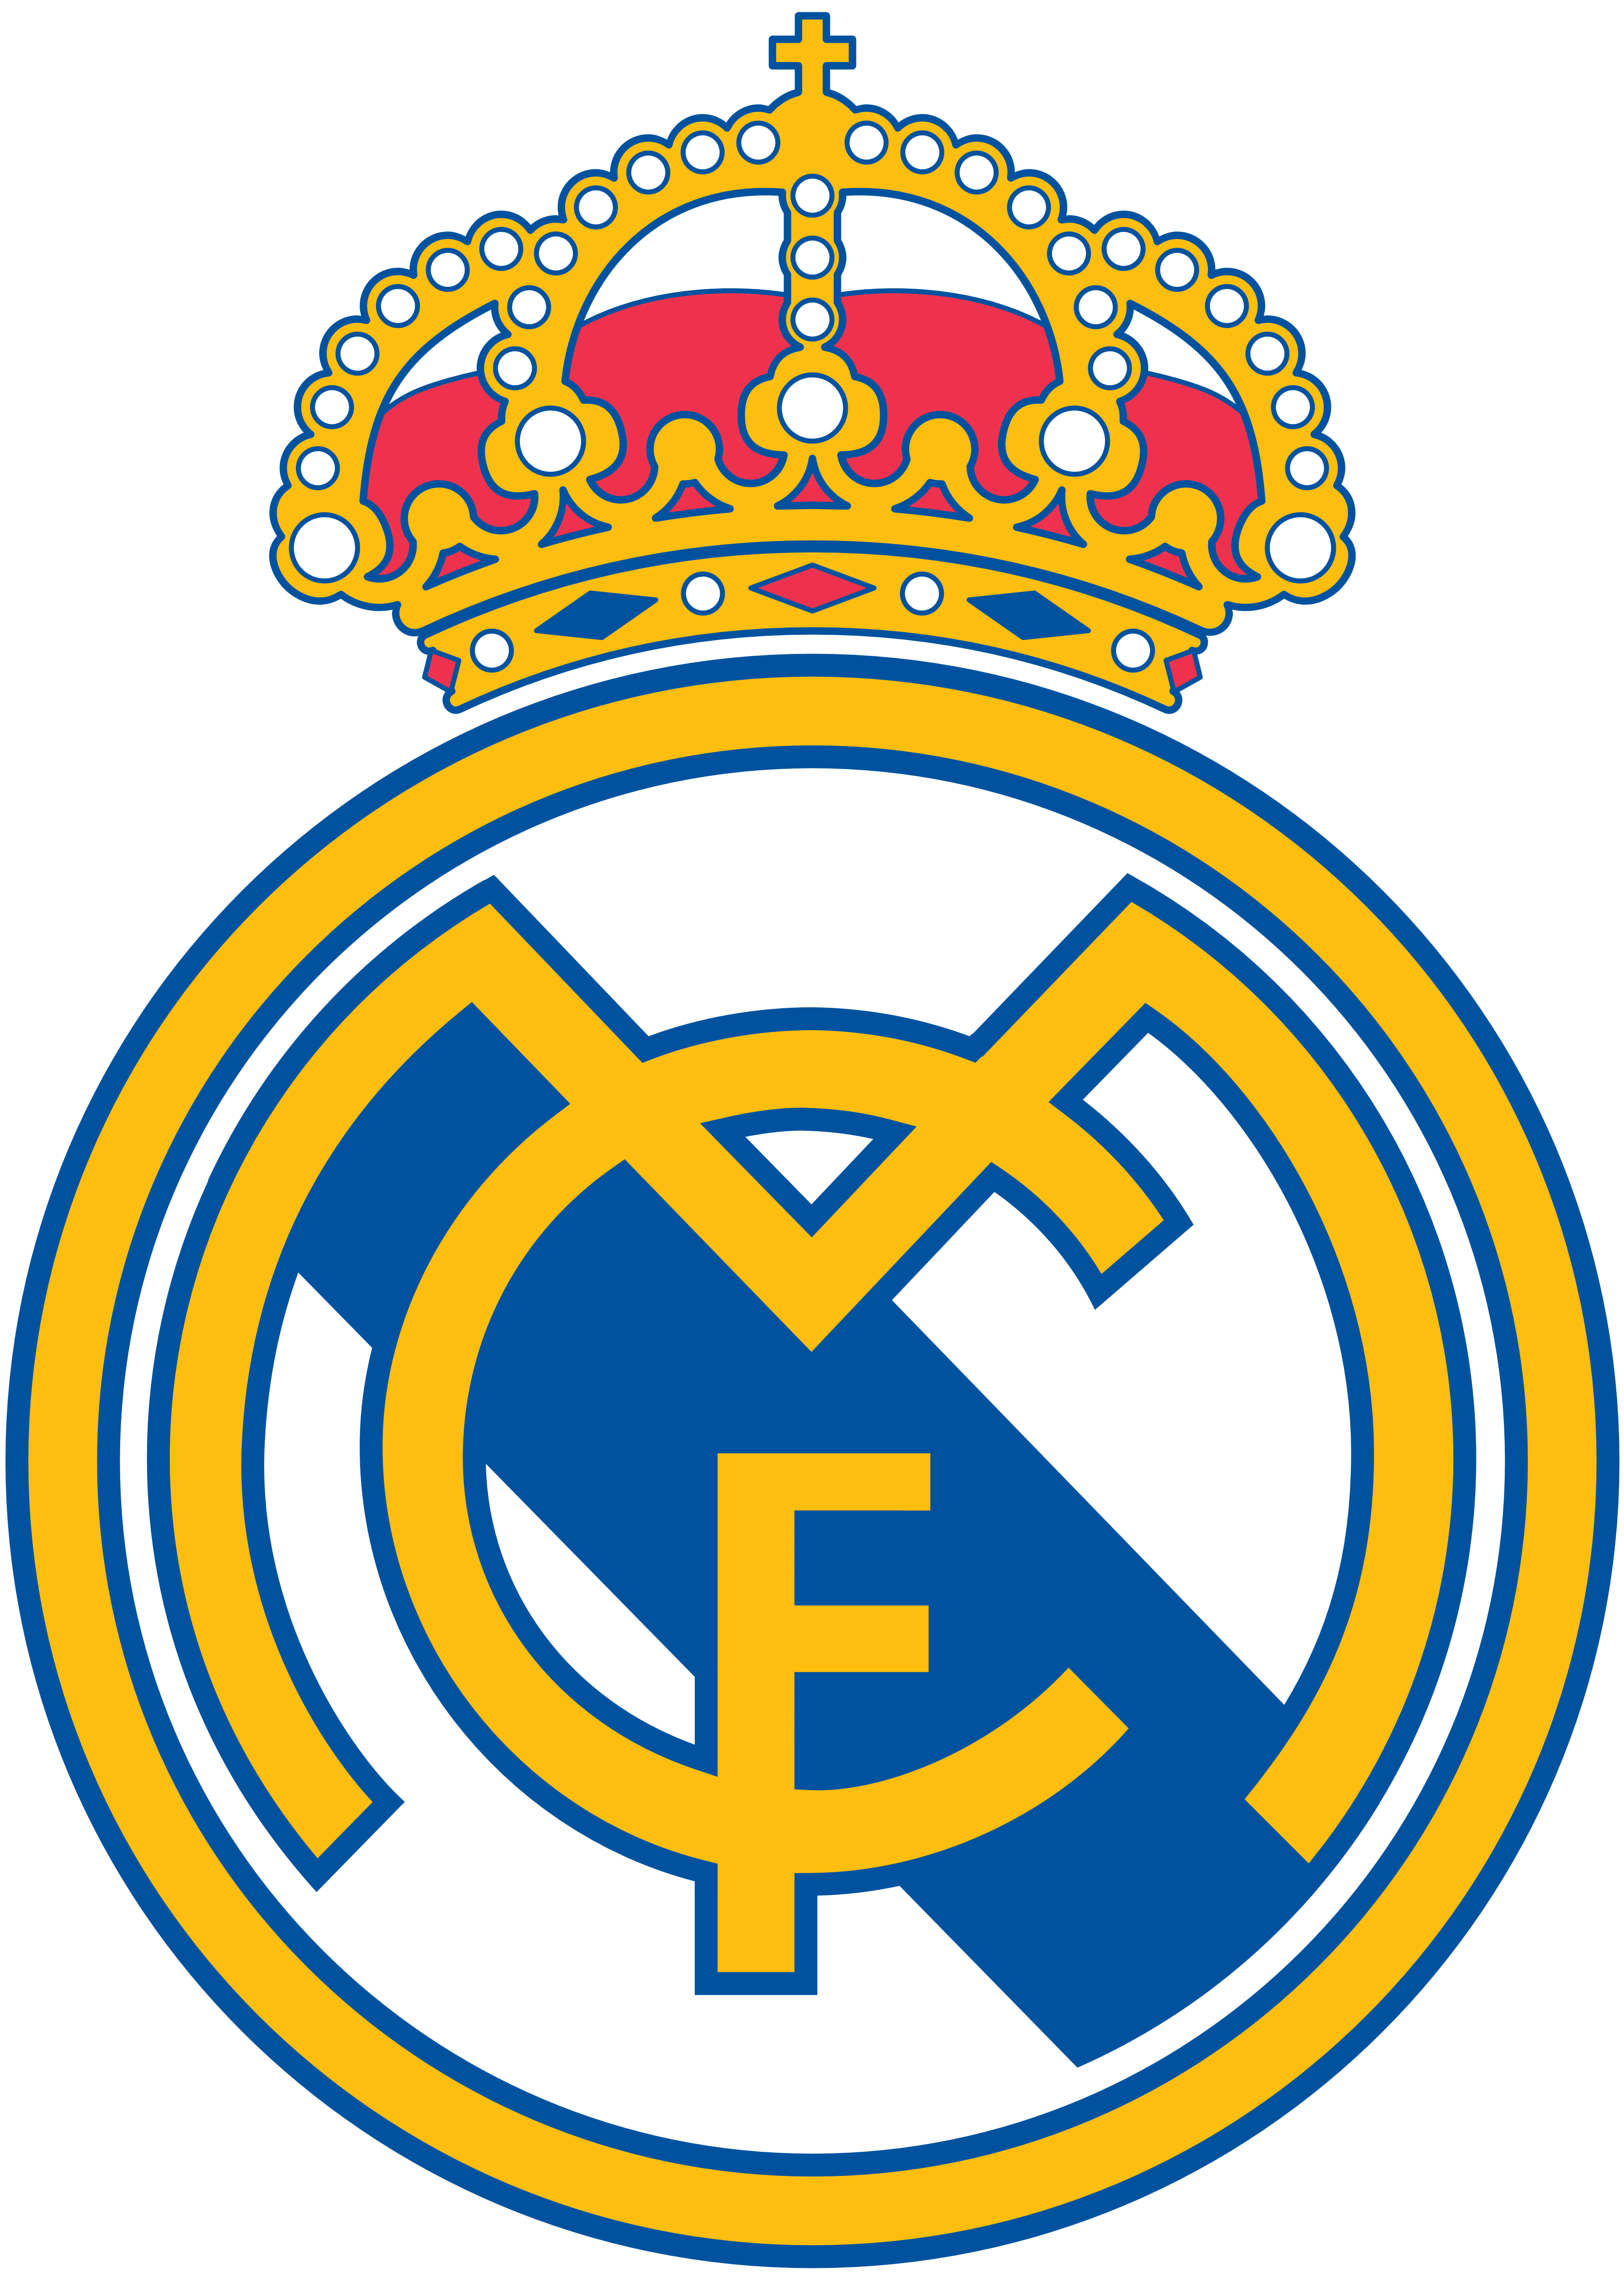 Real madrid logo download free clipart with a transparent.